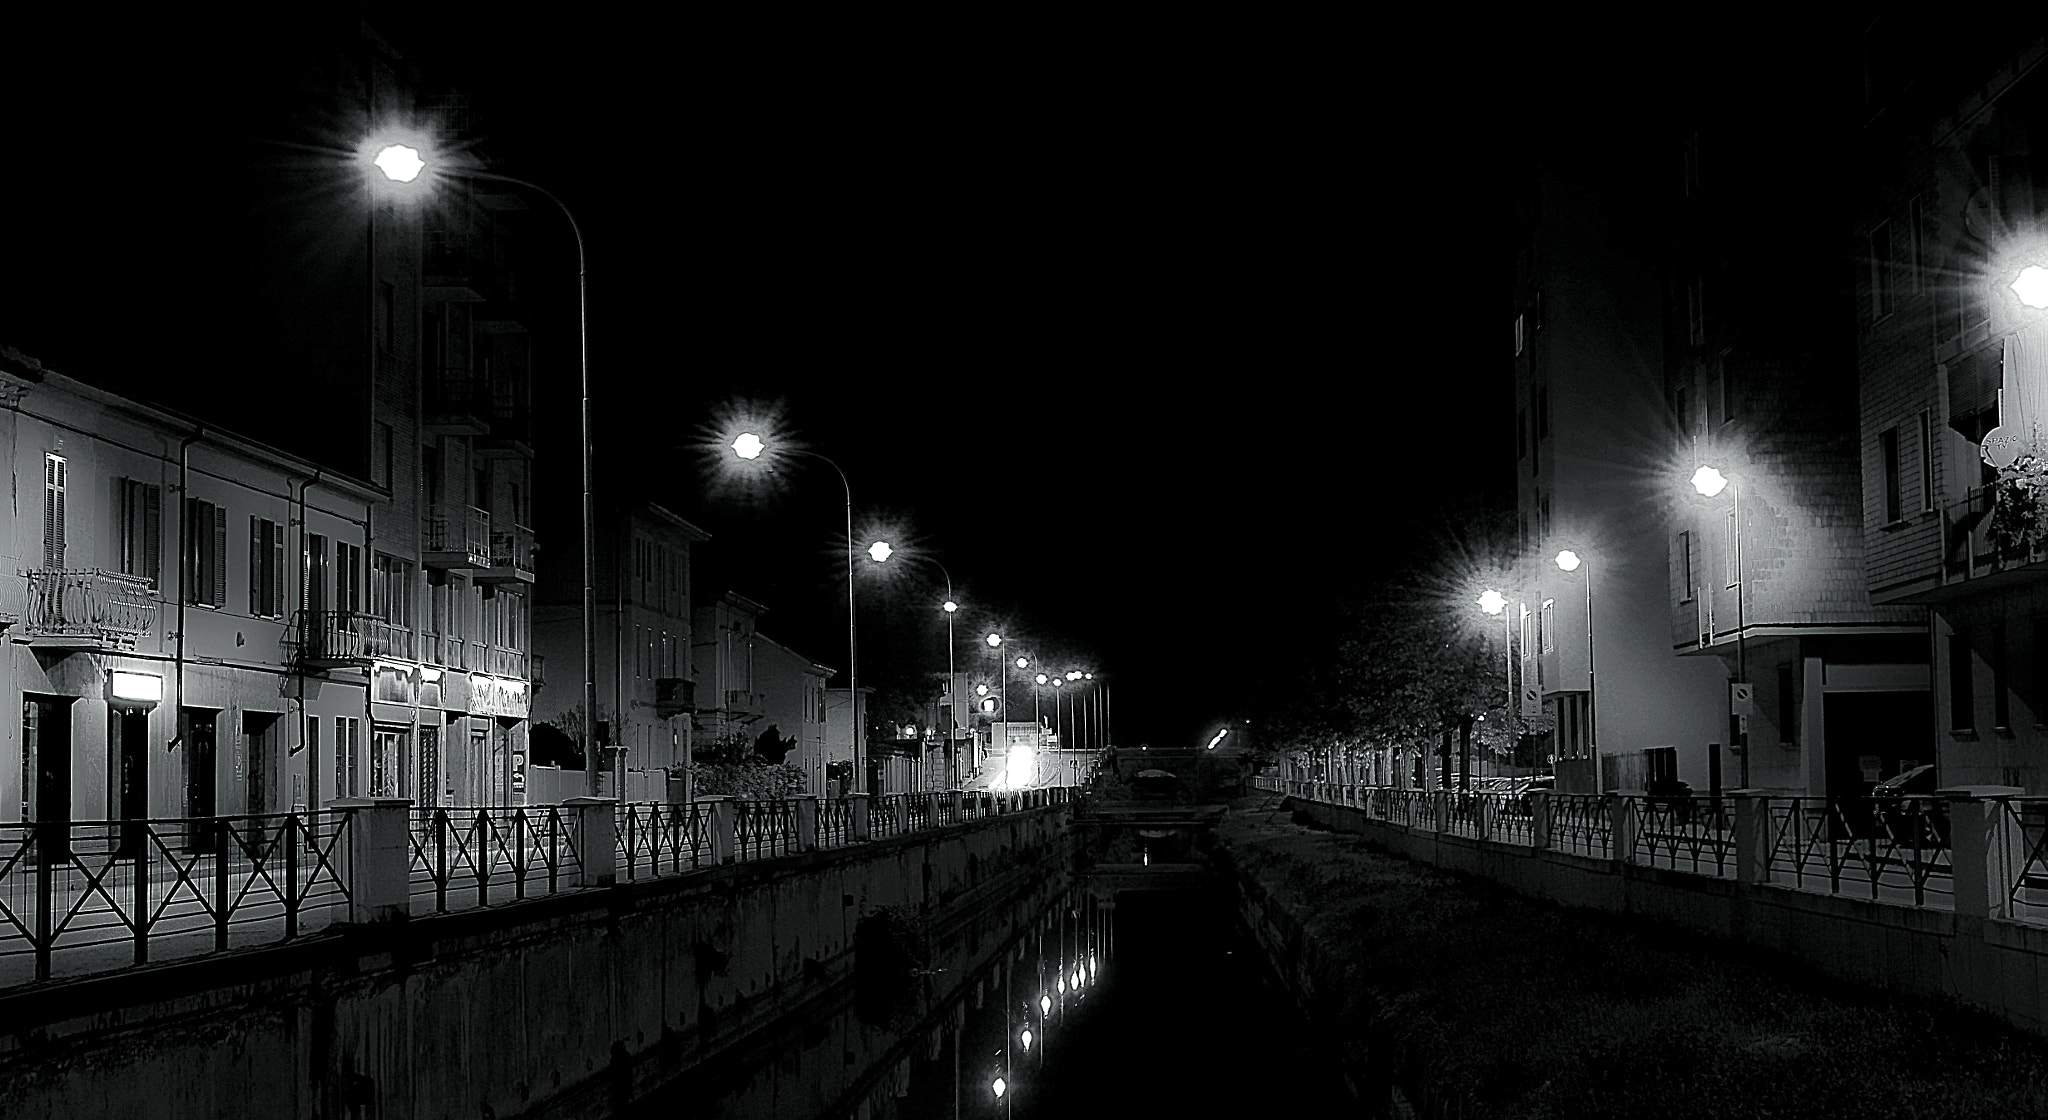 Photograph Sometimes, at night, I turn on a light not to see. by Matteo Ferrando on 500px